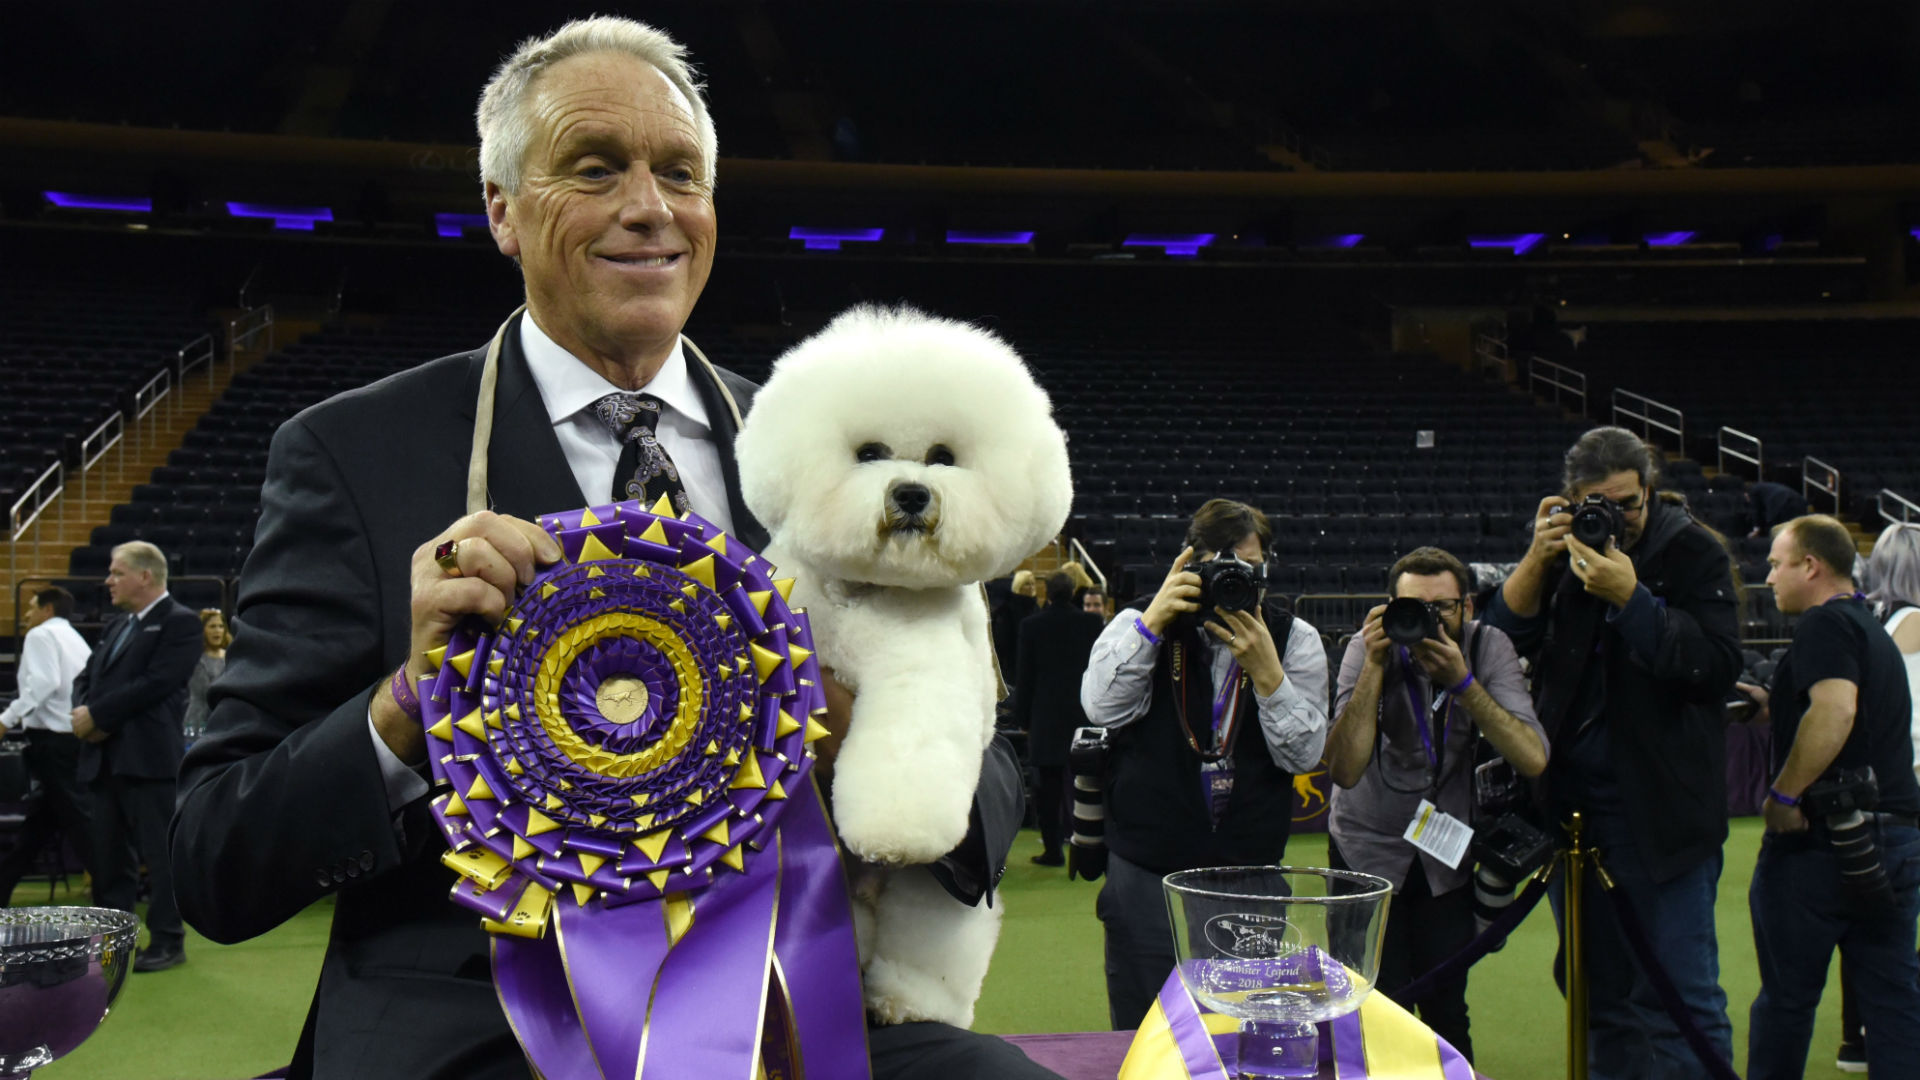 Dog drama dominates Westminster with ineligibility, boos for top pooch